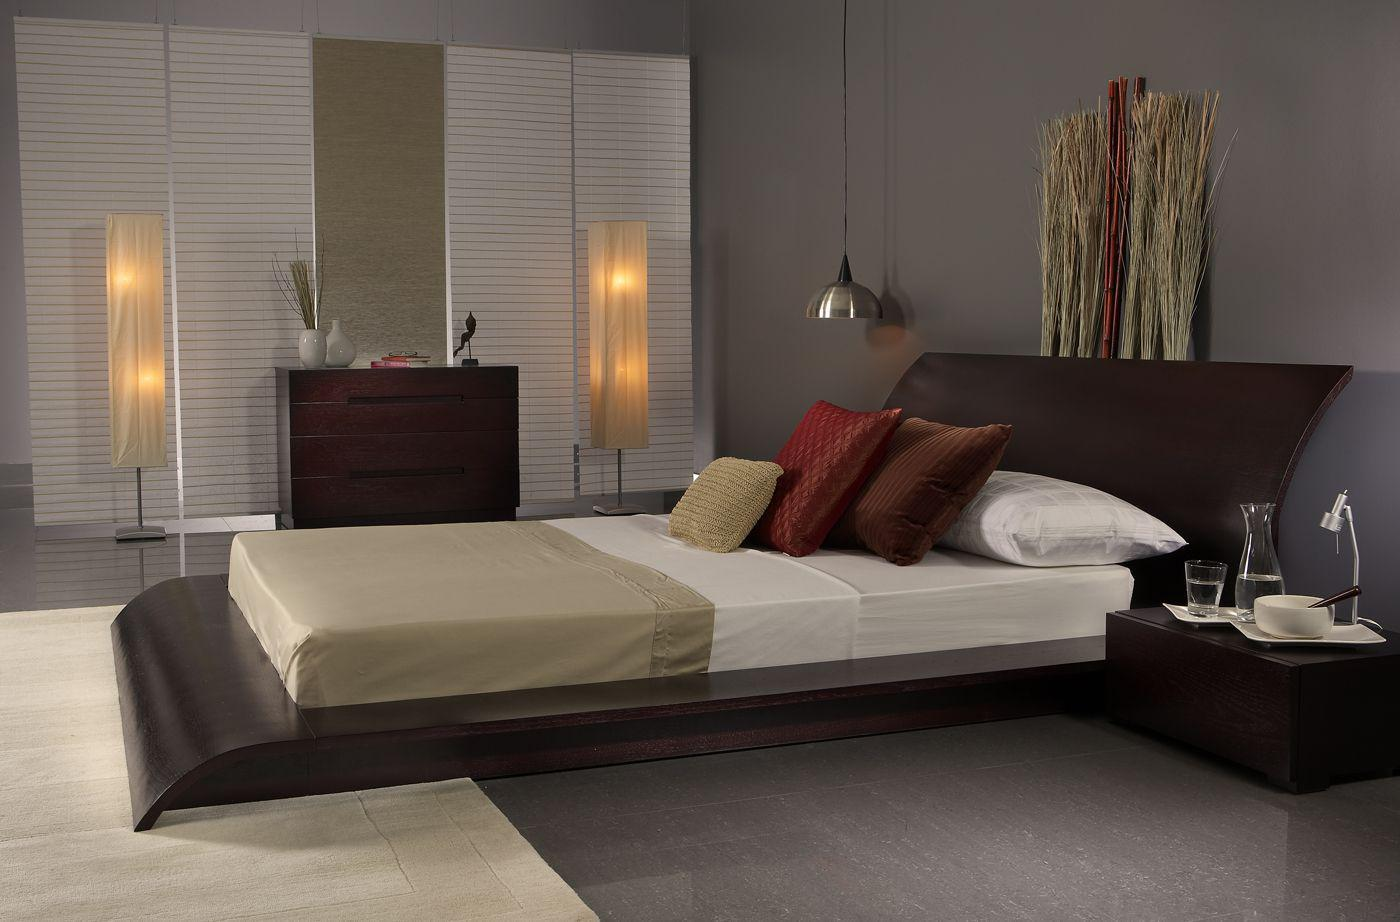 Image of: Modern Bed Designs In Wood